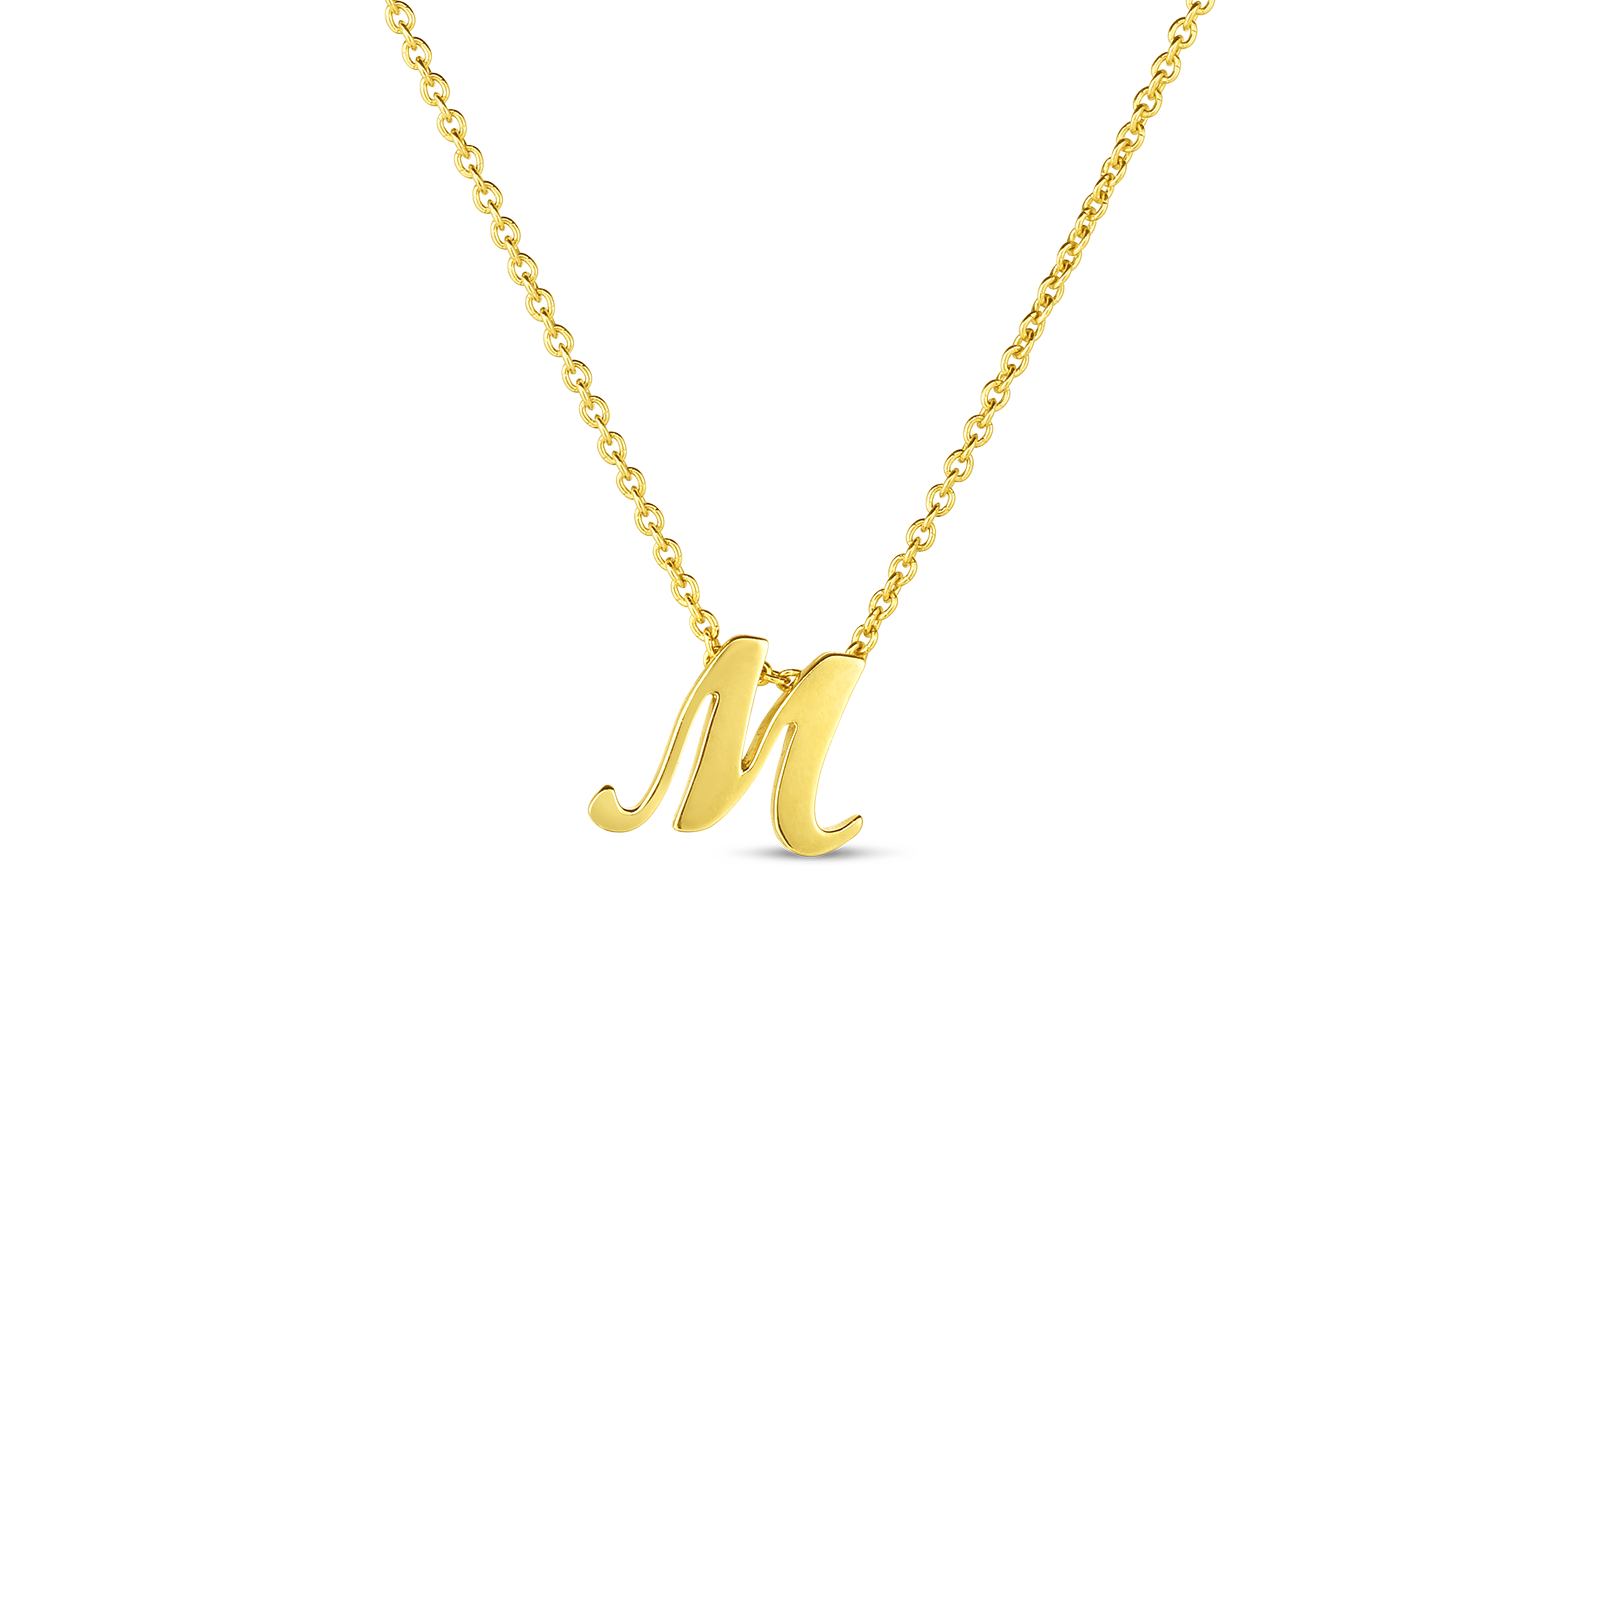 18k Small Script Initial 'M' Pendant On Chain